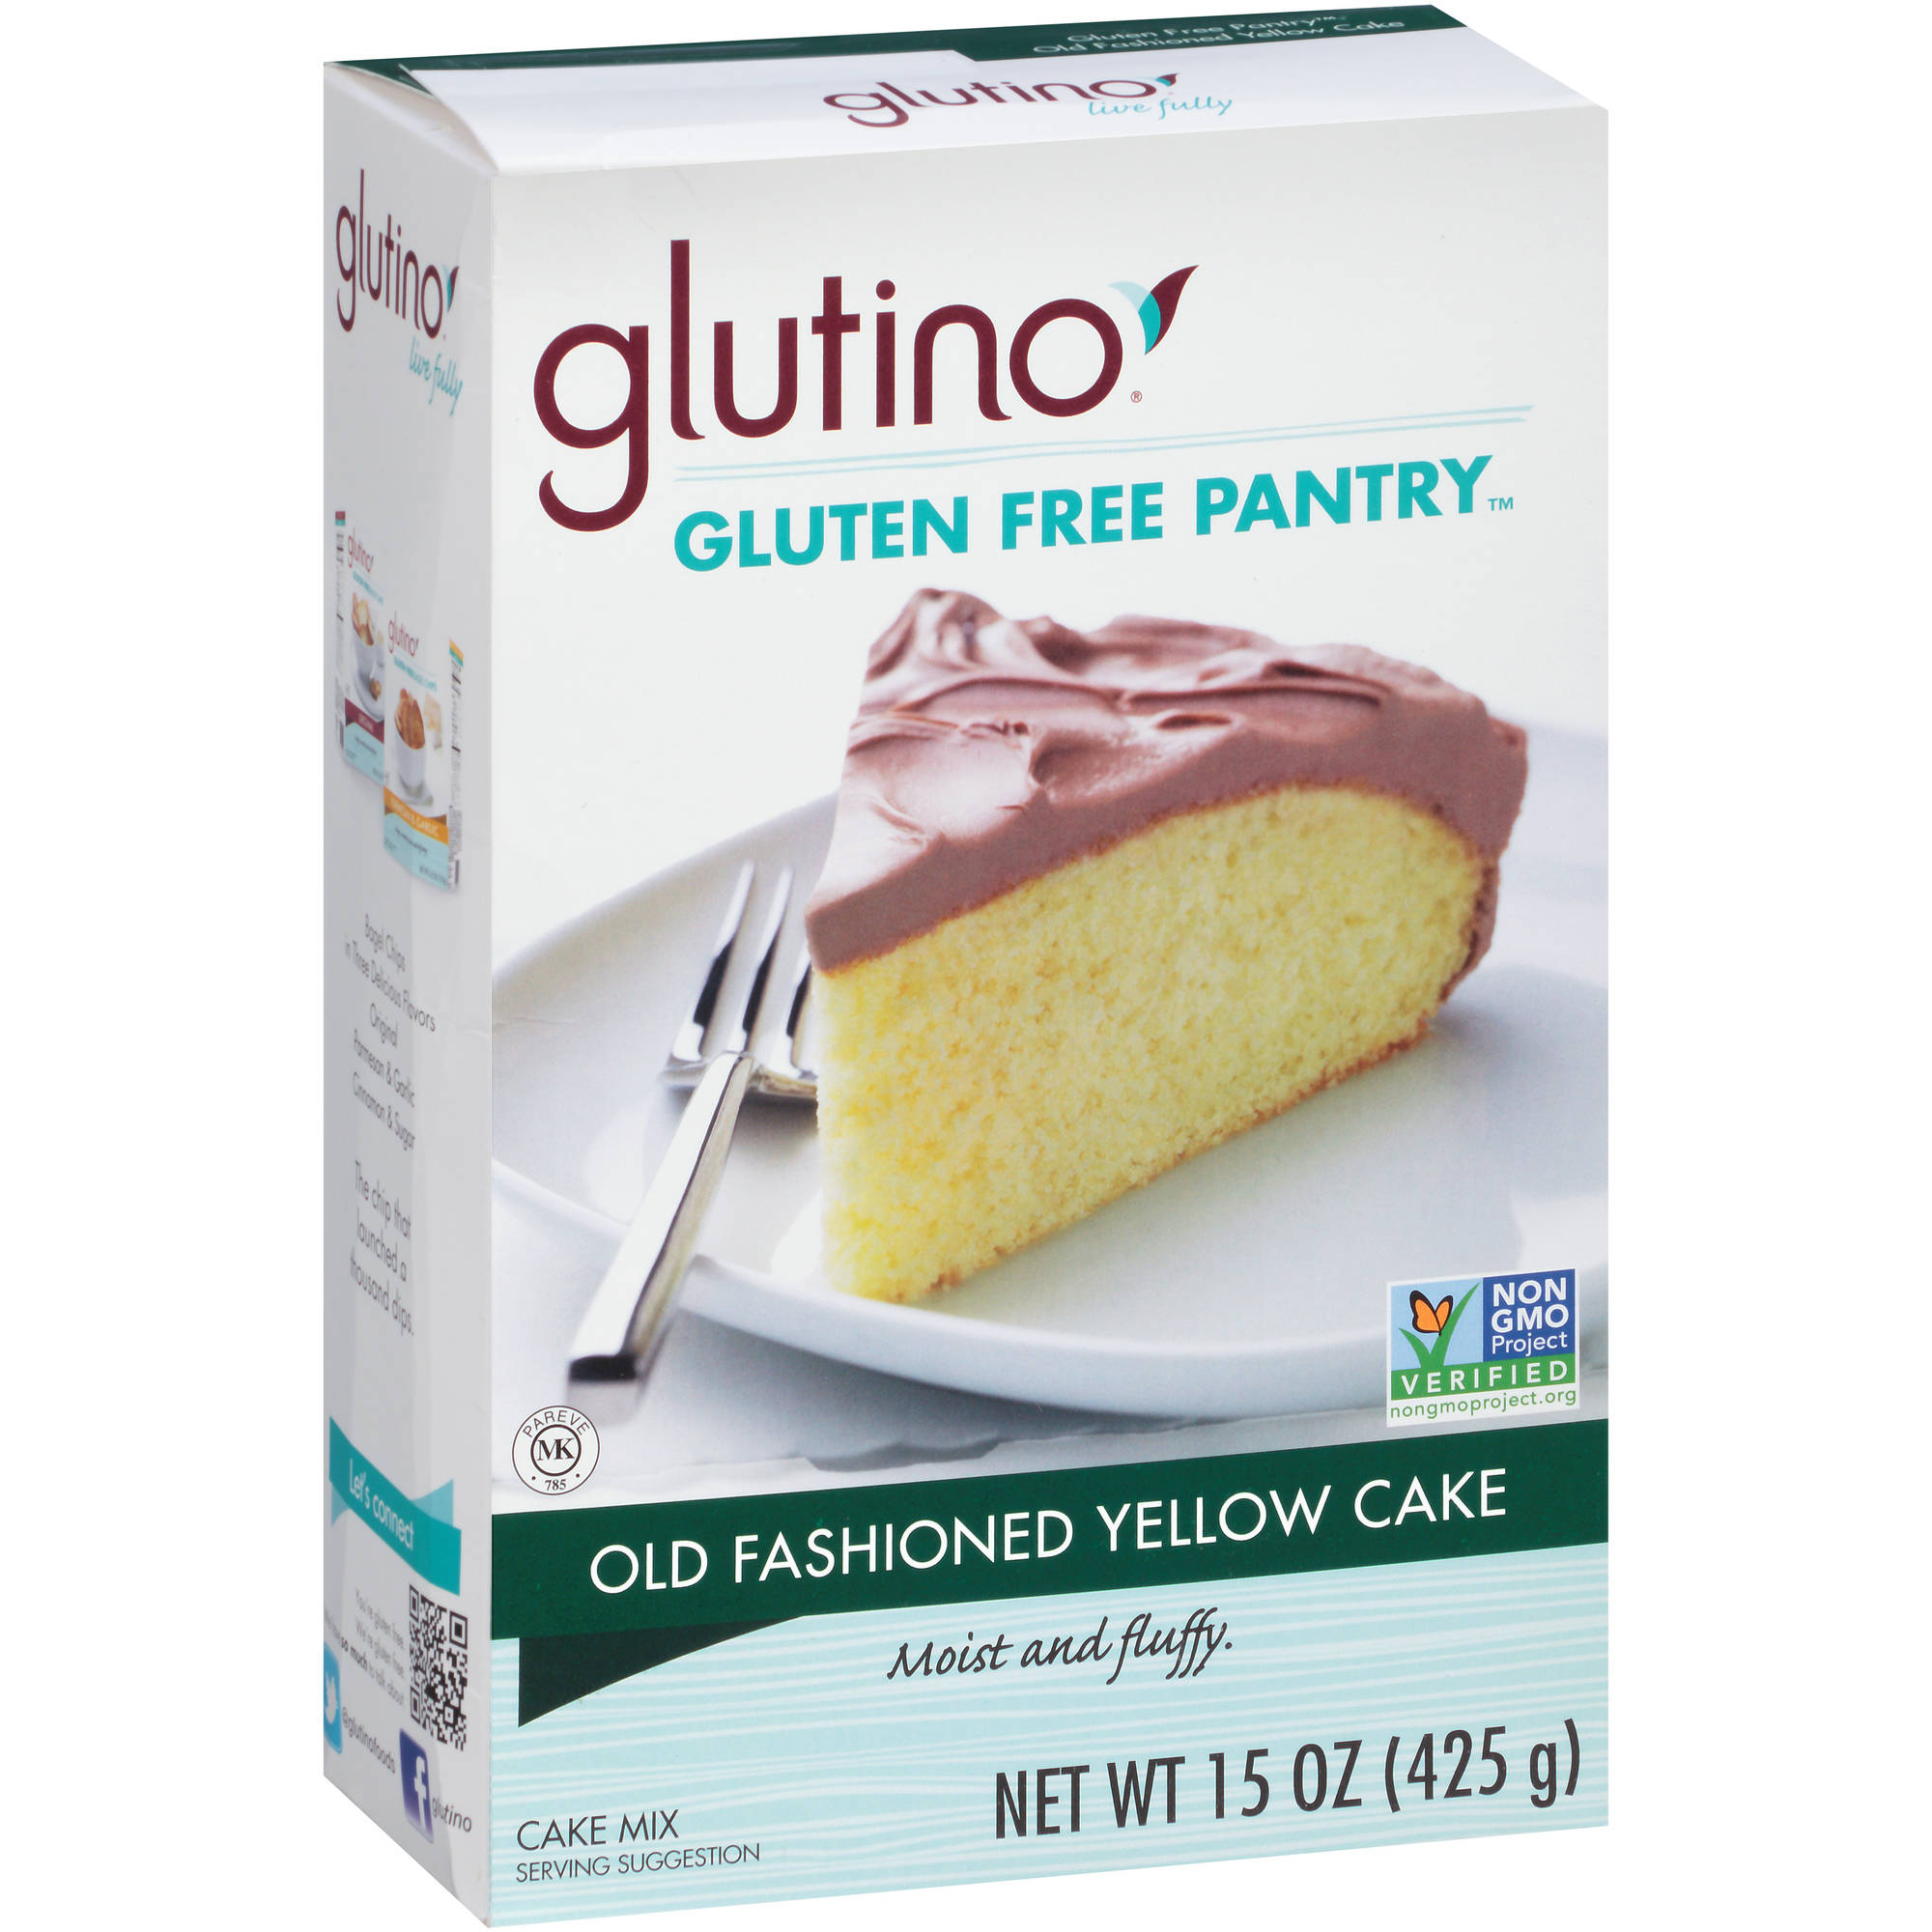 Glutino Gluten Free Pantry Old Fashioned Yellow Cake Mix, 15 oz